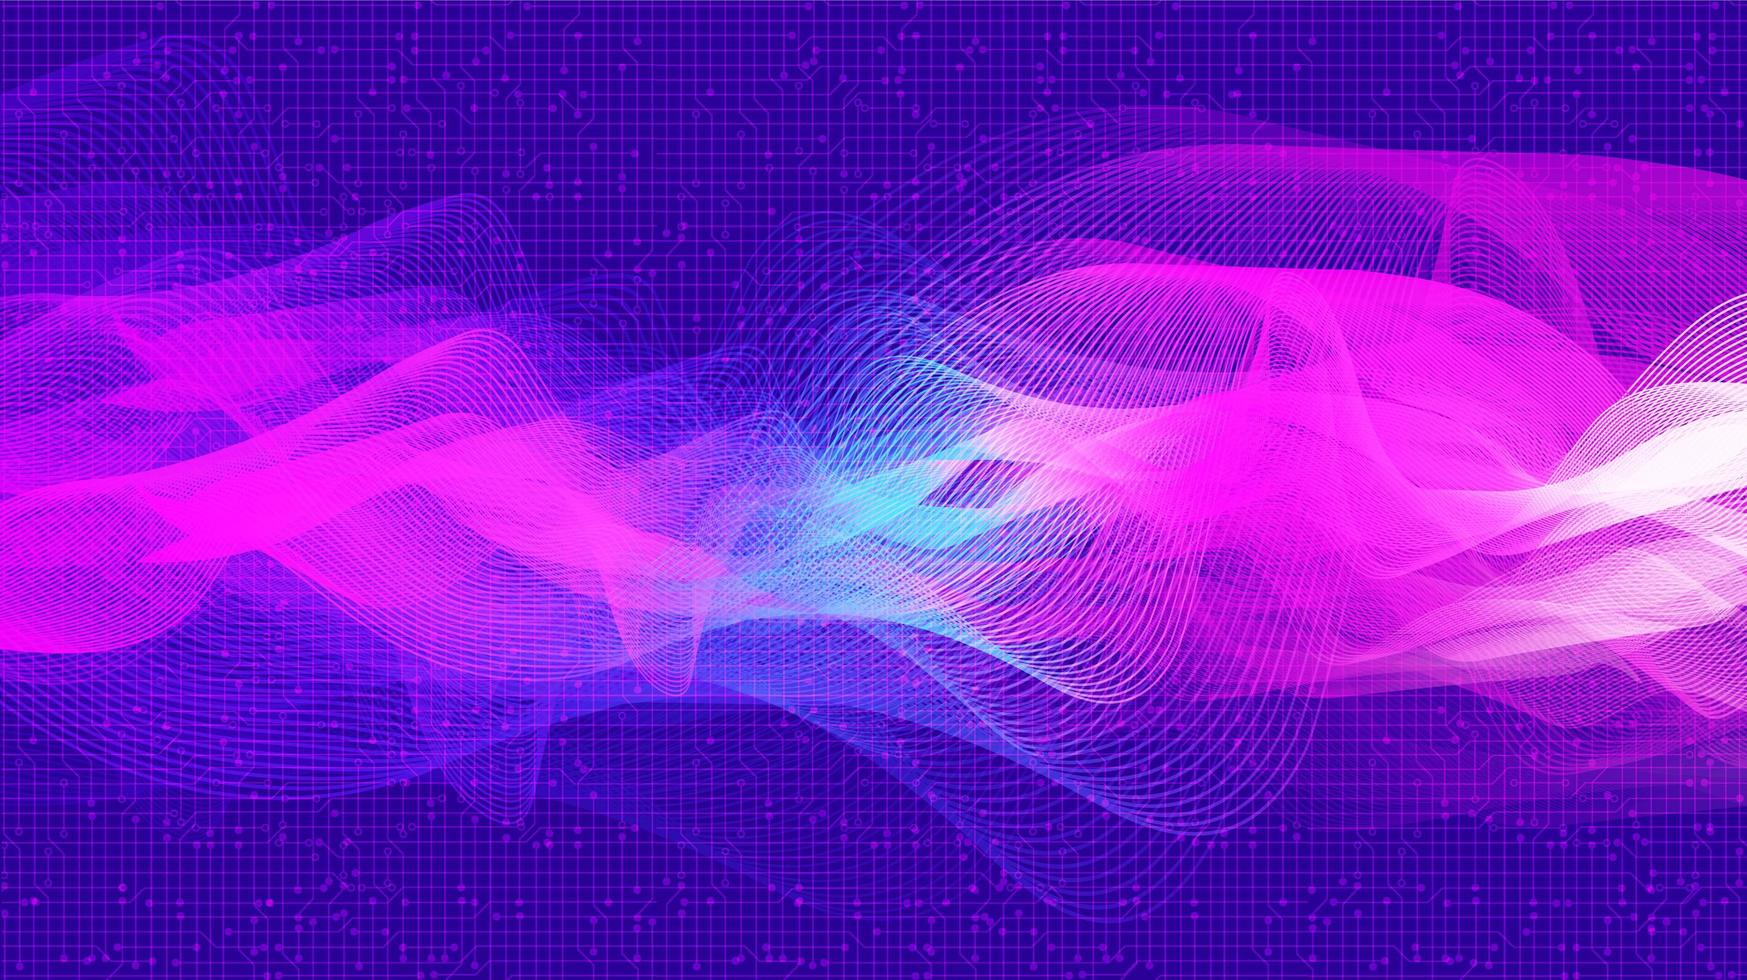 Violet Digital Sound Wave and earthquake wave concept design for music studio and science vector